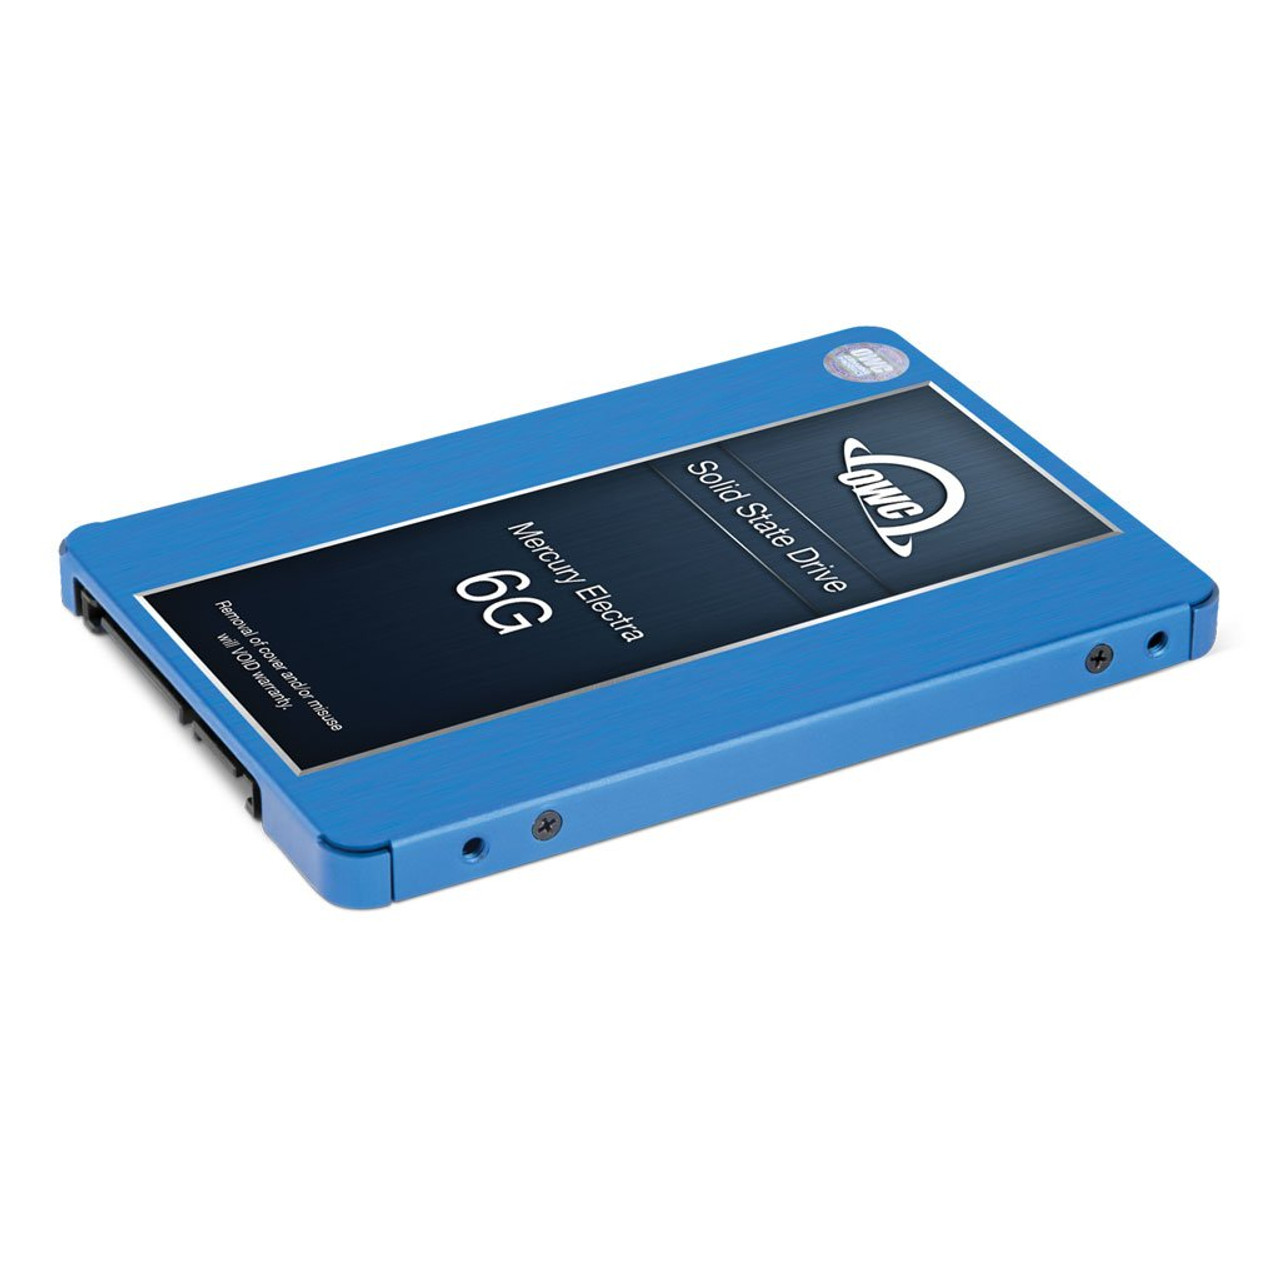 (*) 2TB OWC Mercury Electra 6Gb/s 2.5-inch SSD Serial-ATA 7mm Solid-State Drive - open box